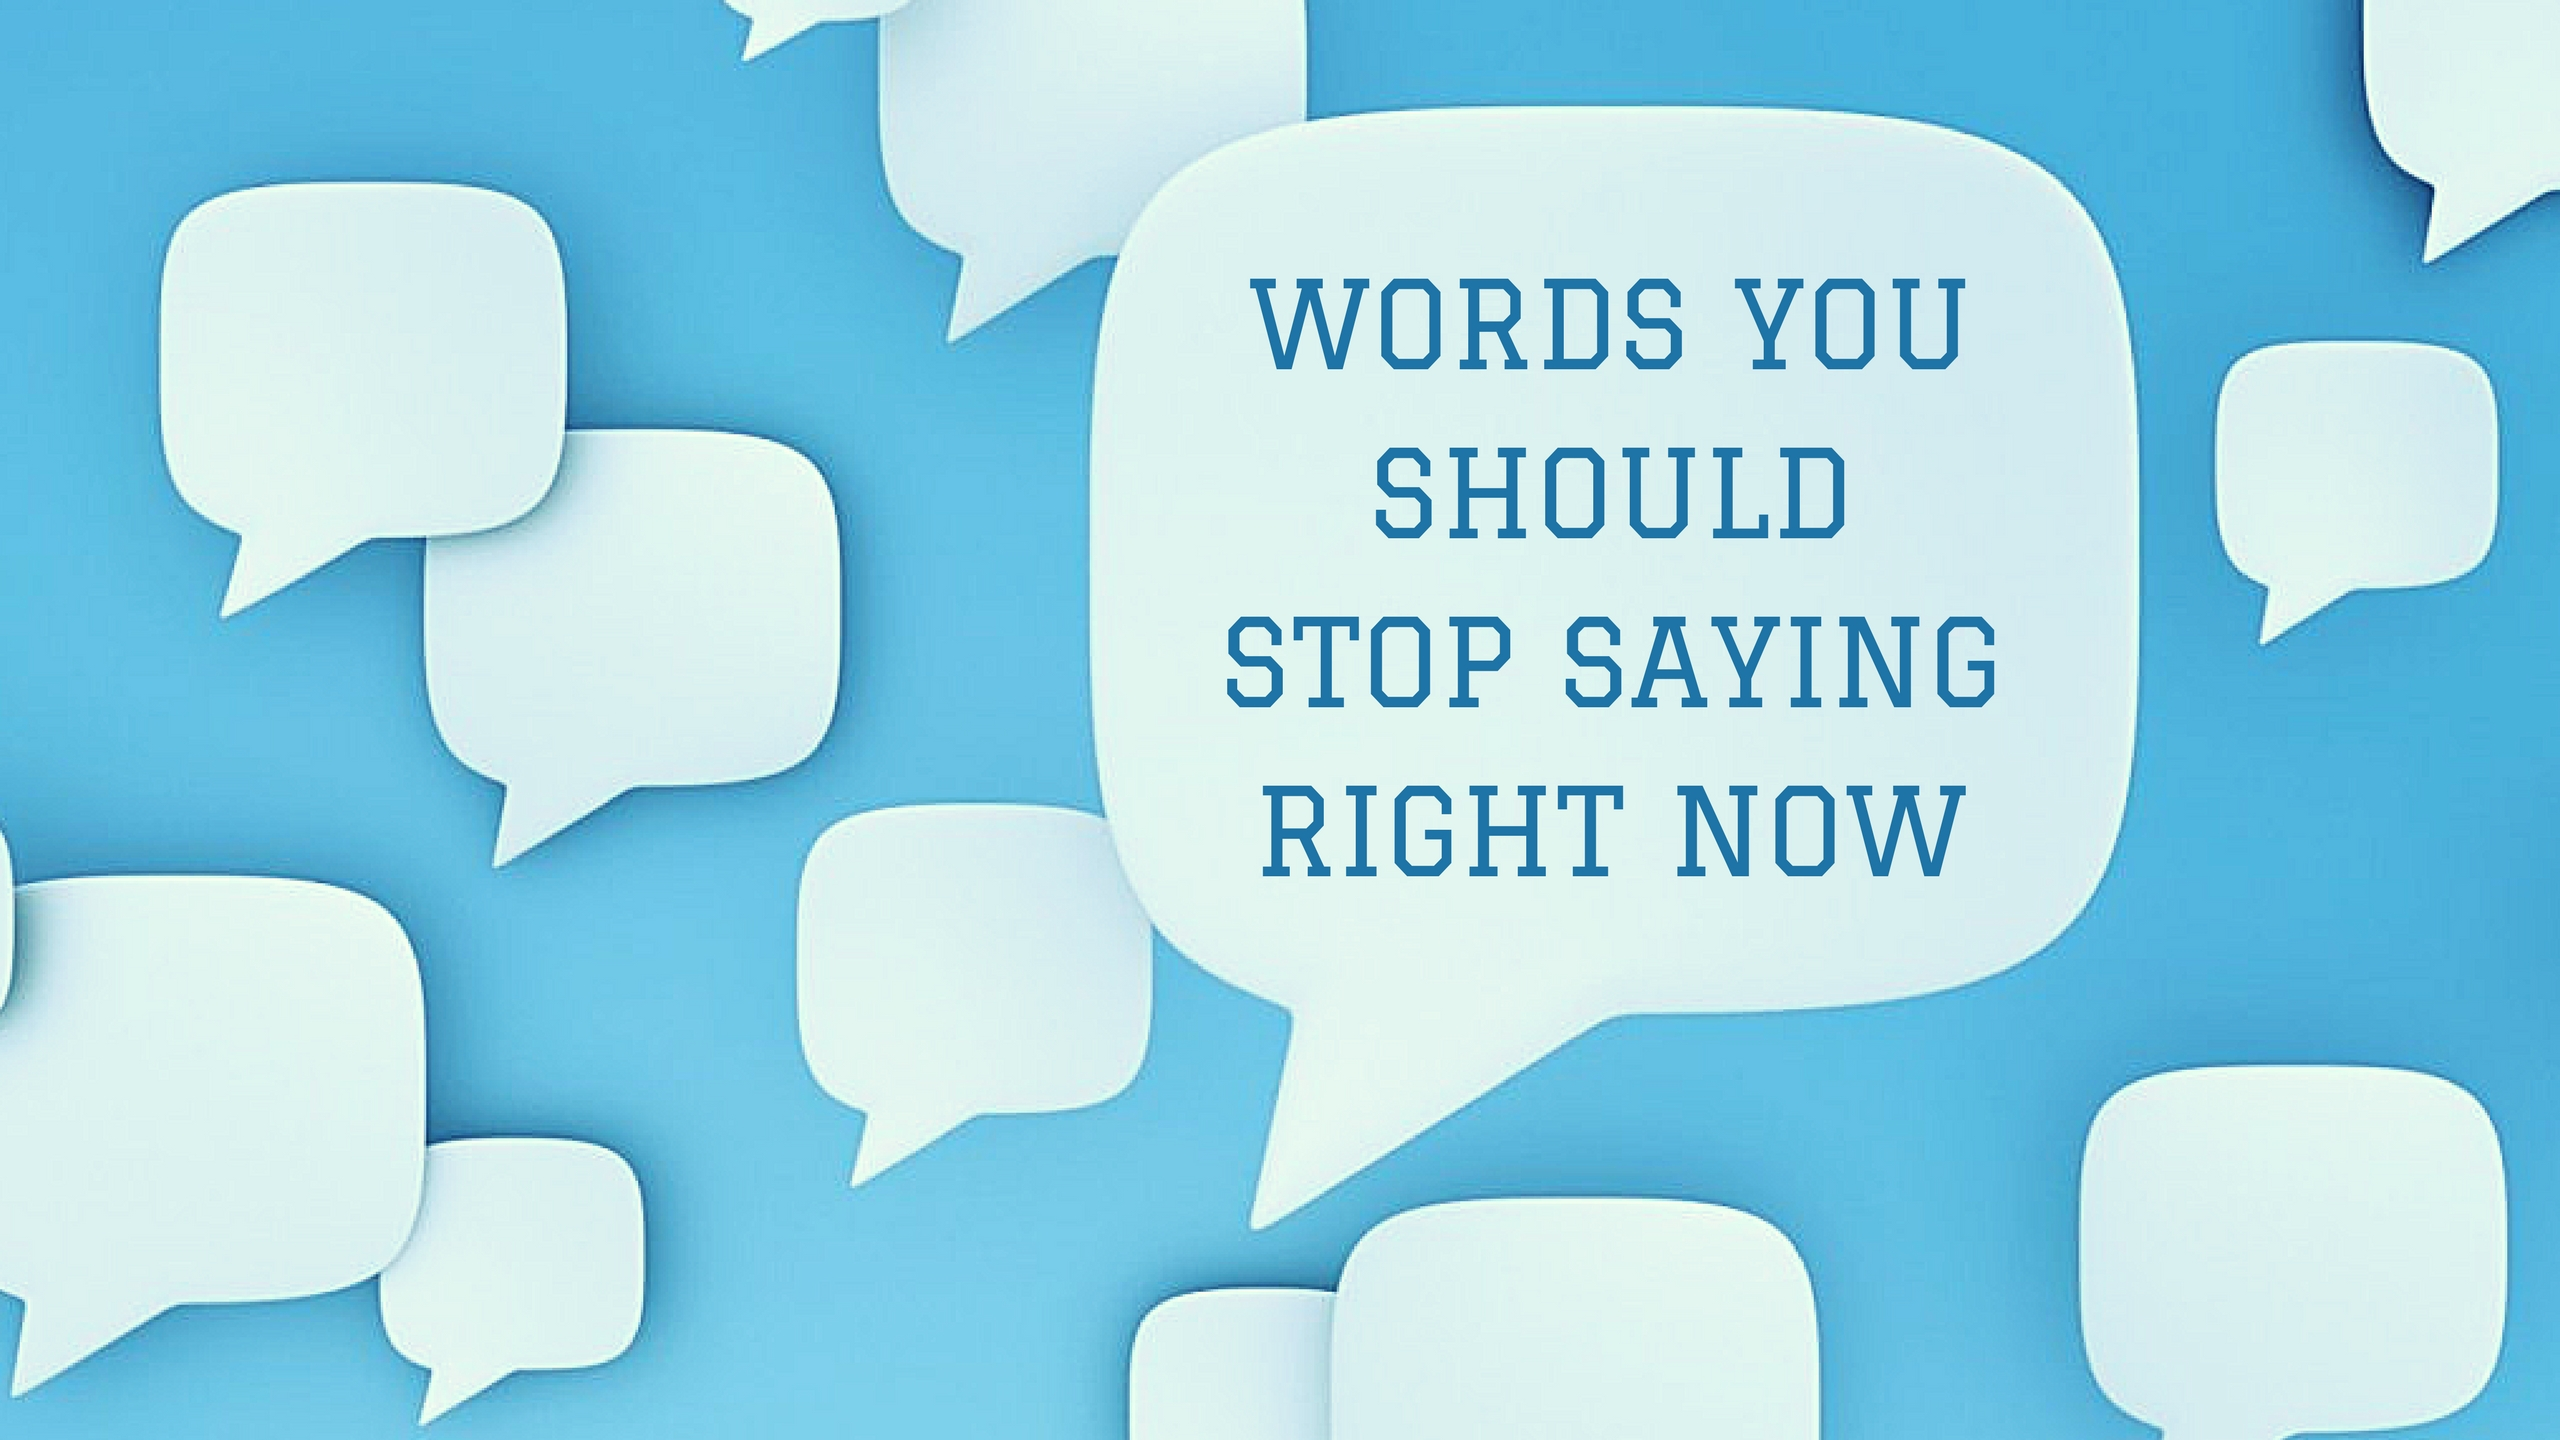 WORDS YOU SHOULD STOP SAYING RIGHT NOW